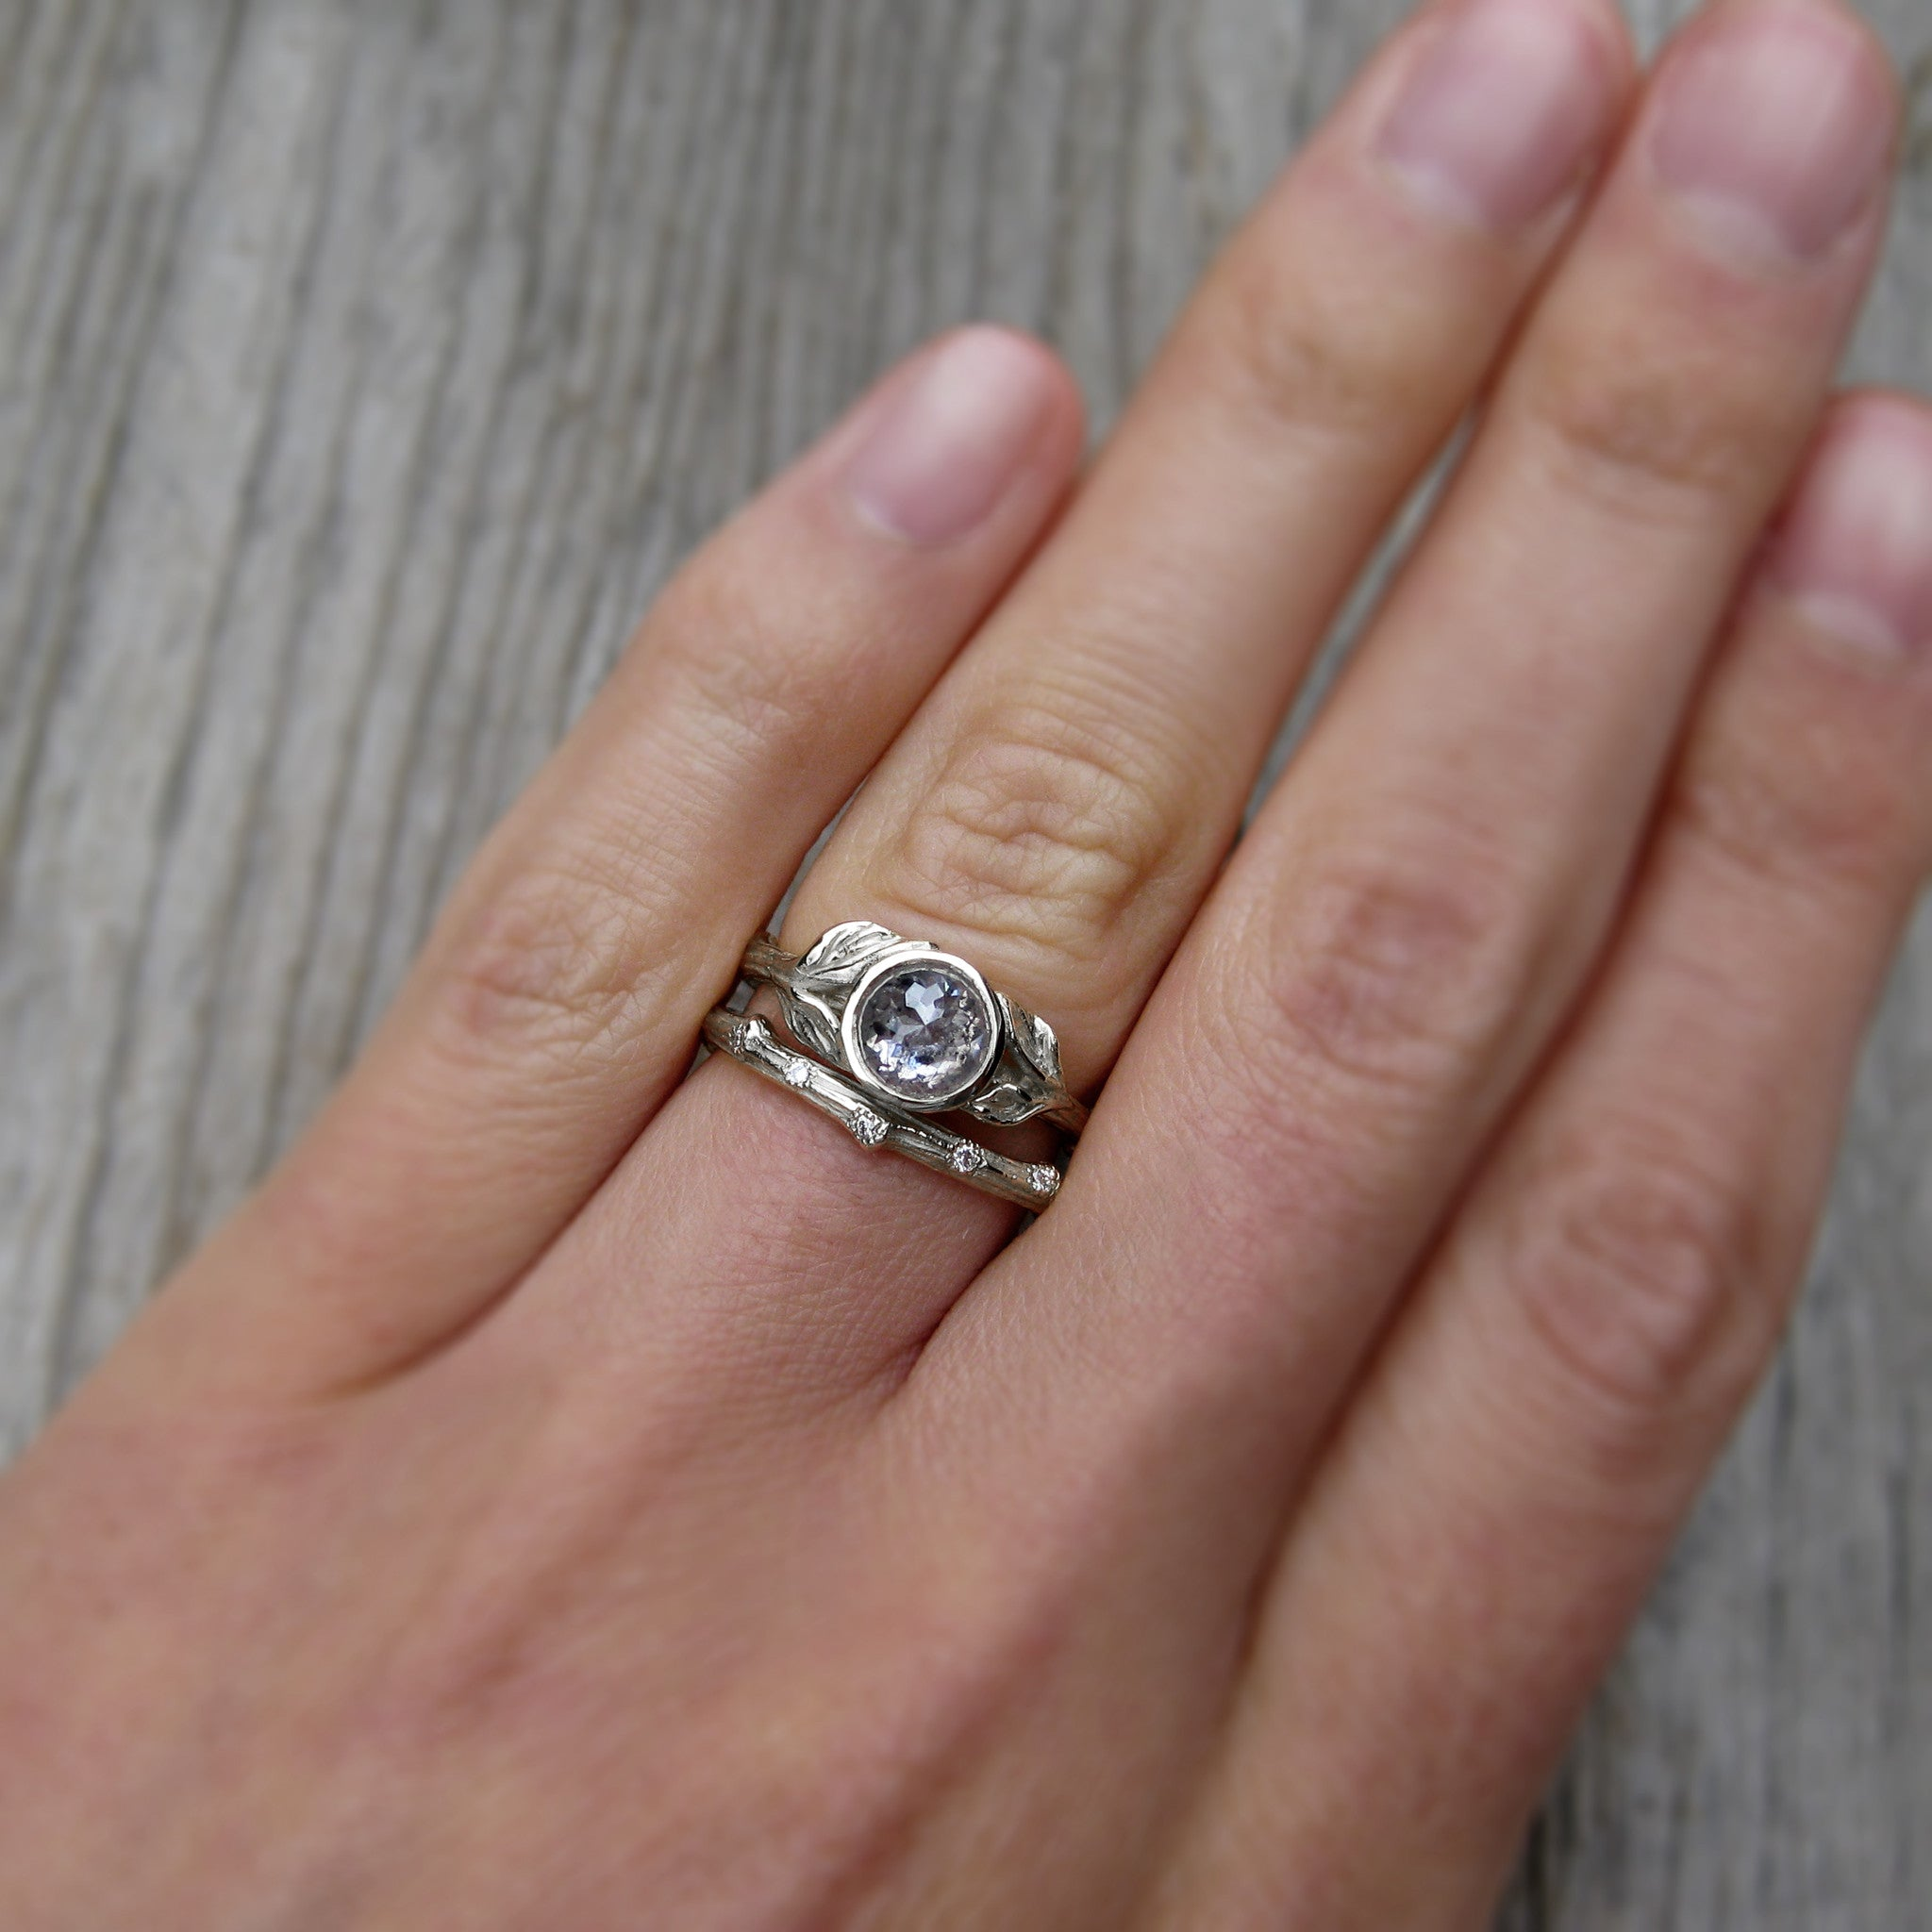 build your own rose cut diamond twig leaves ring - Build Your Own Wedding Ring